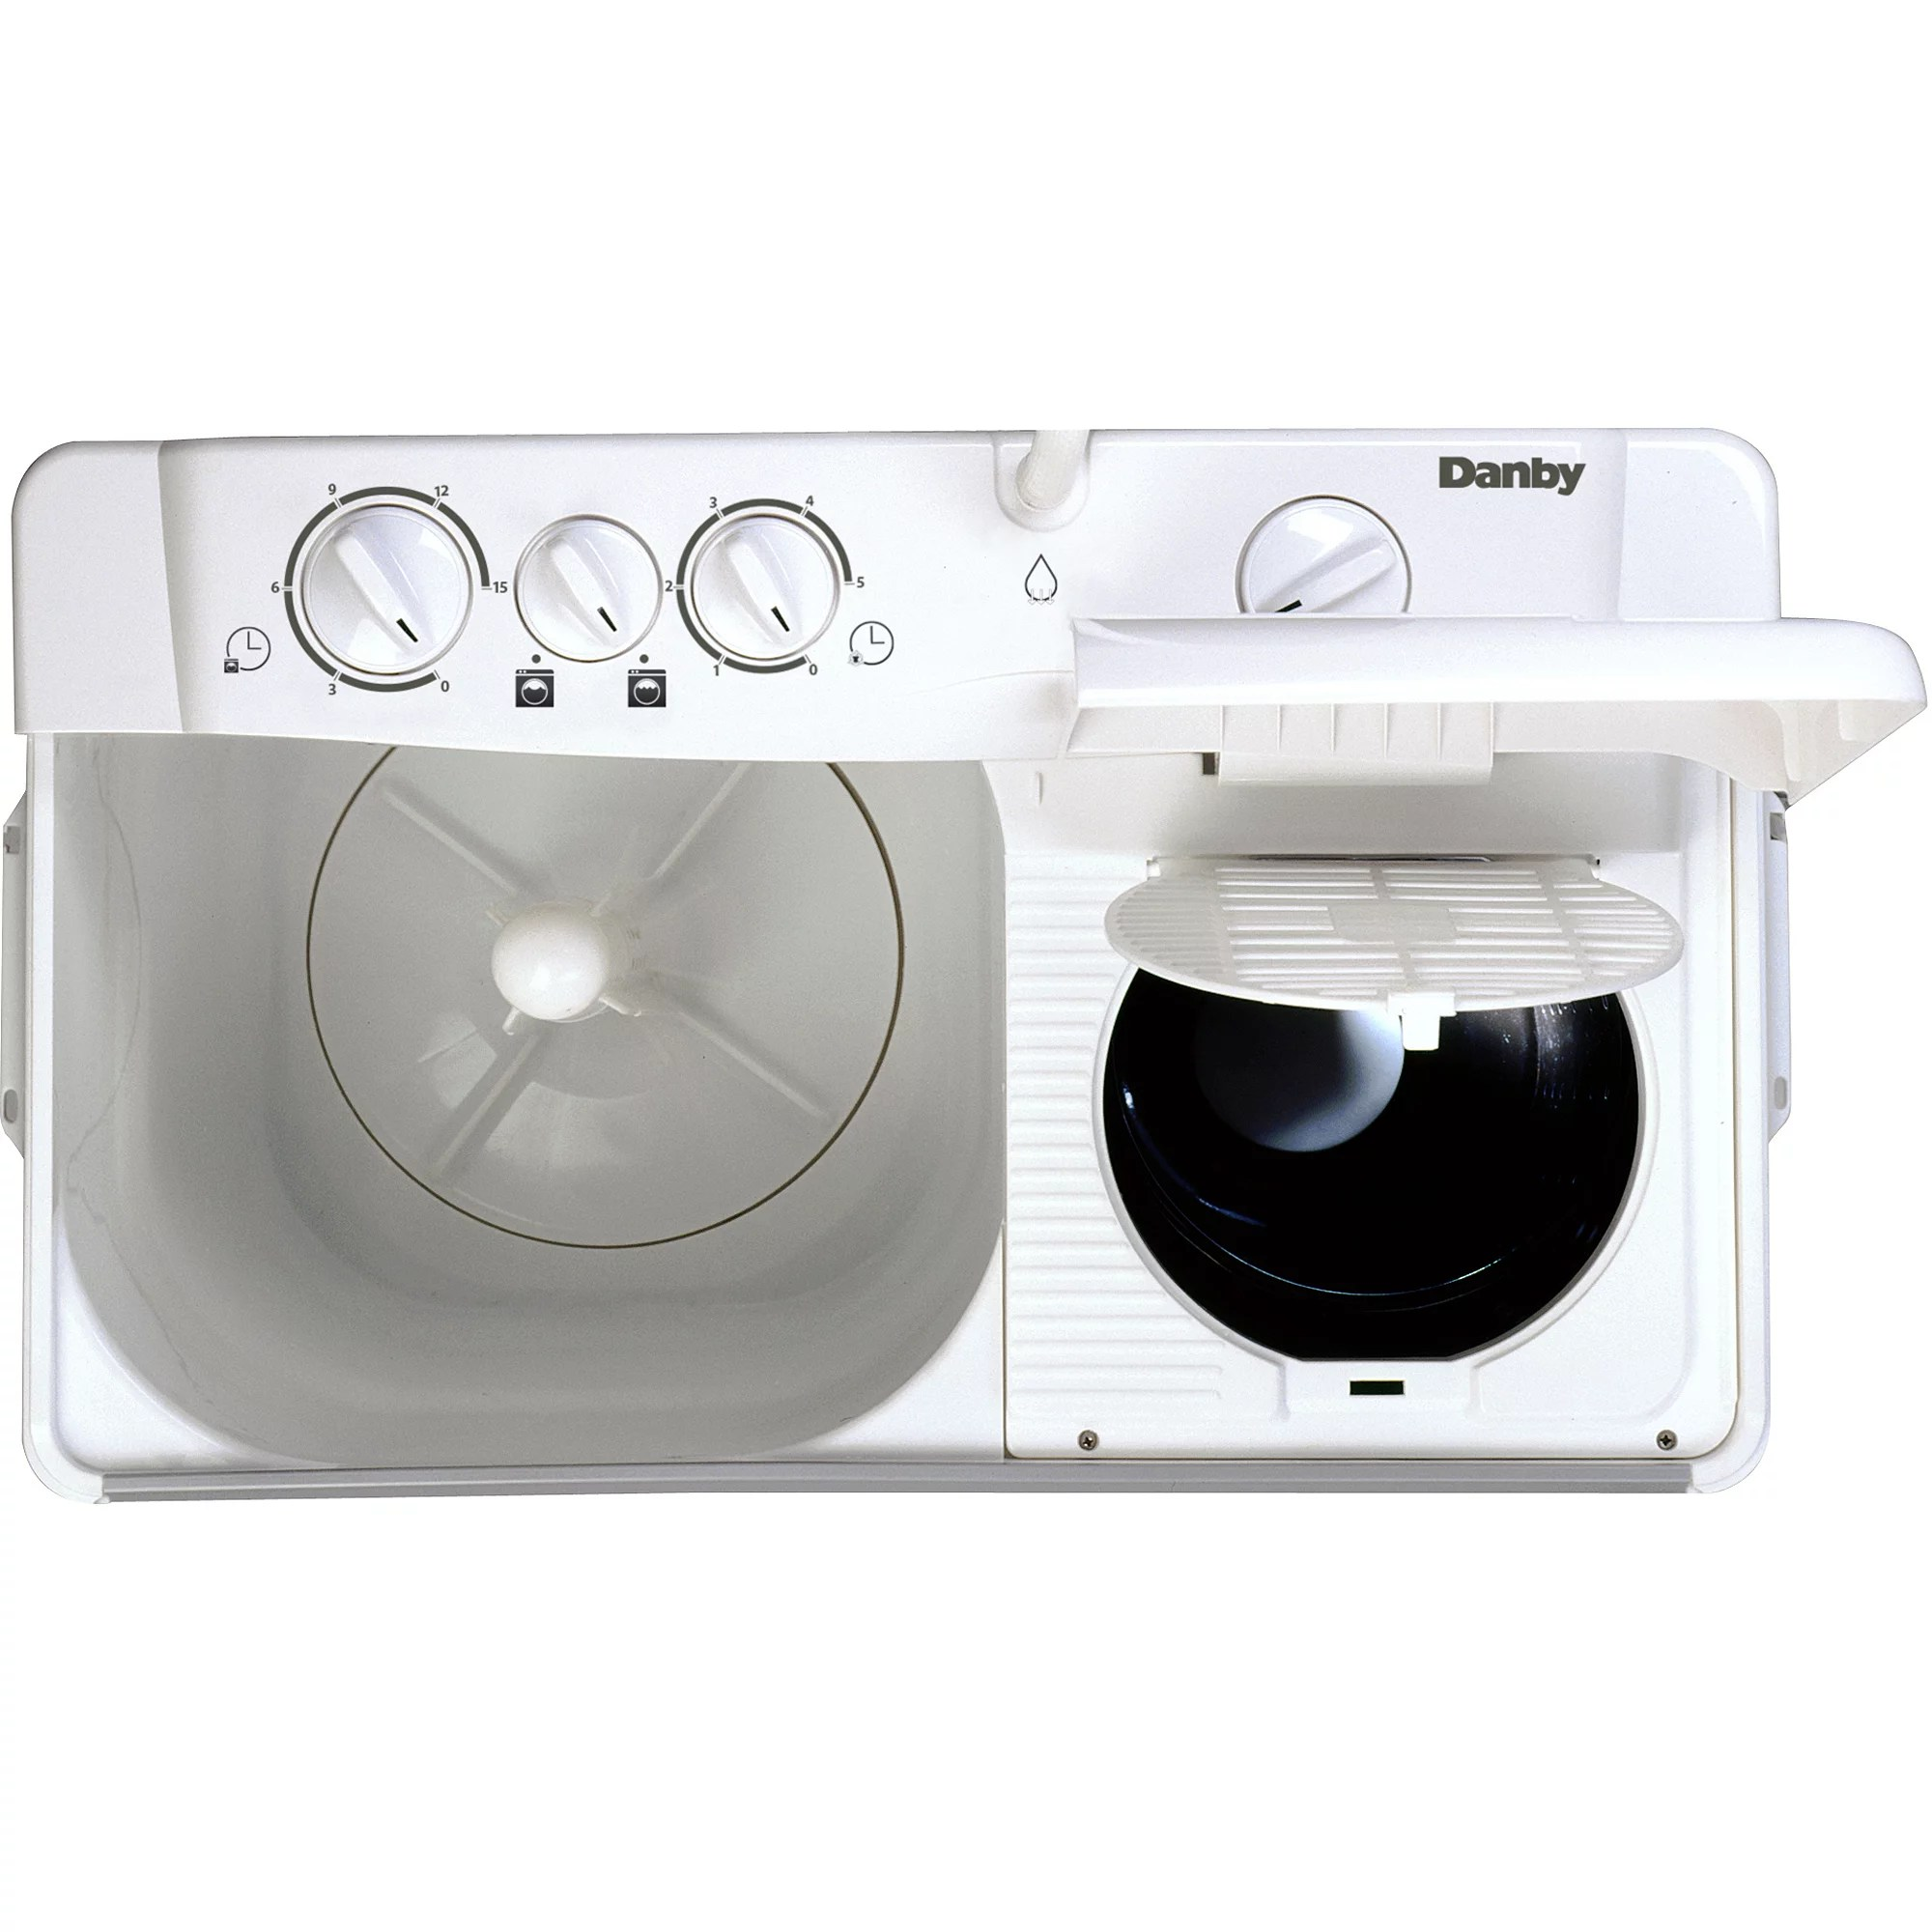 Sears Washer And Dryer Canada Danby 2 26 Cu Ft Twin Tub Washing Machine With Spin Dry White